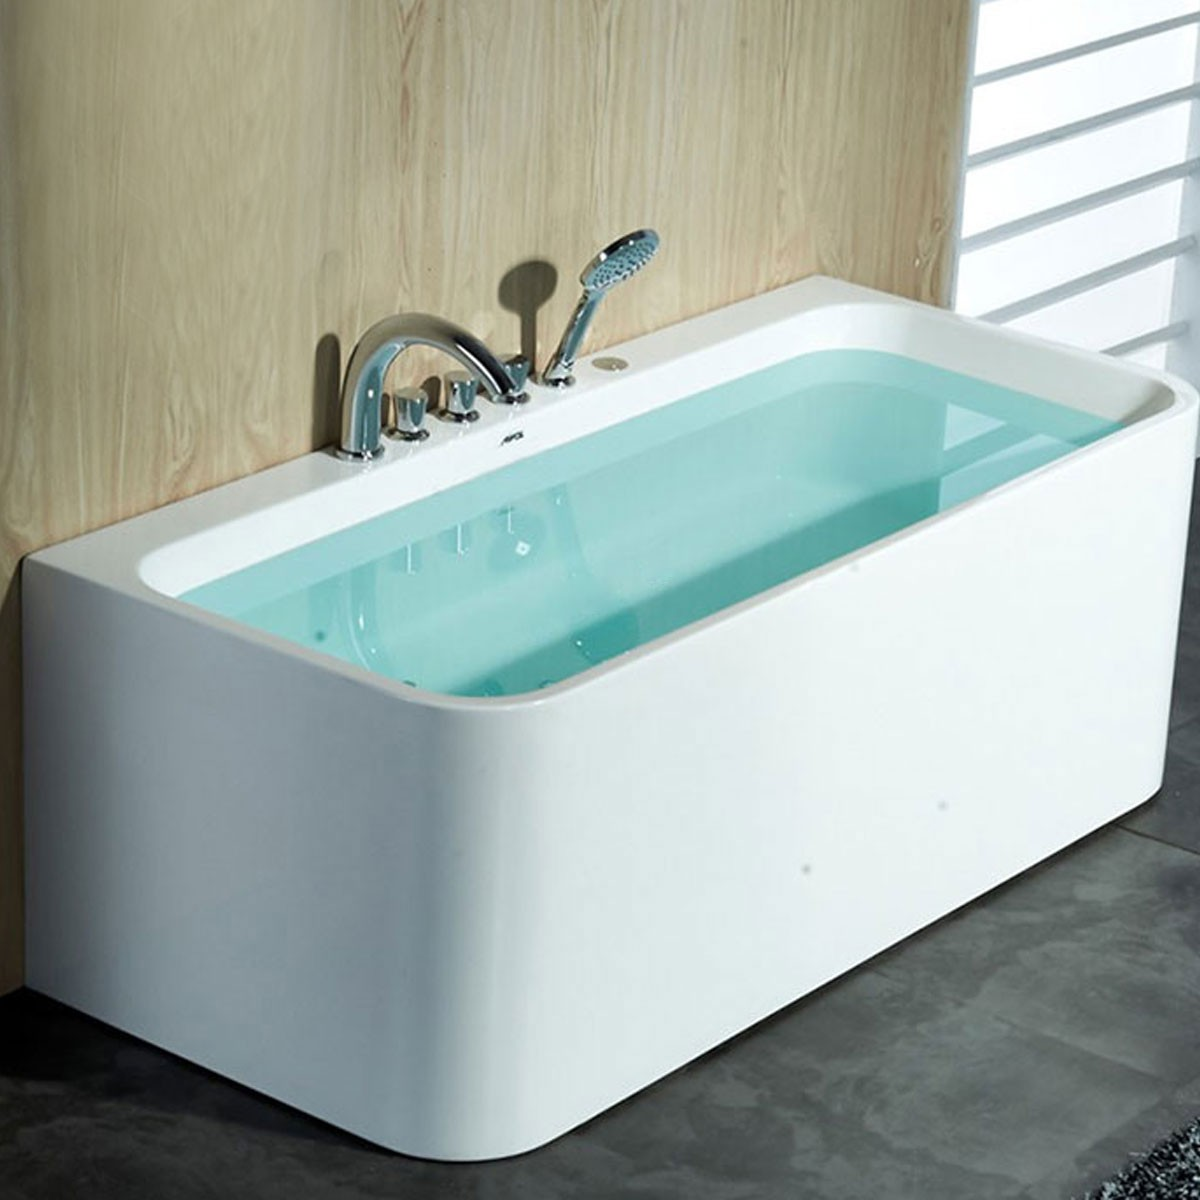 59 In Back To Wall Freestanding Bathtub With Drain Acrylic White DK 1508